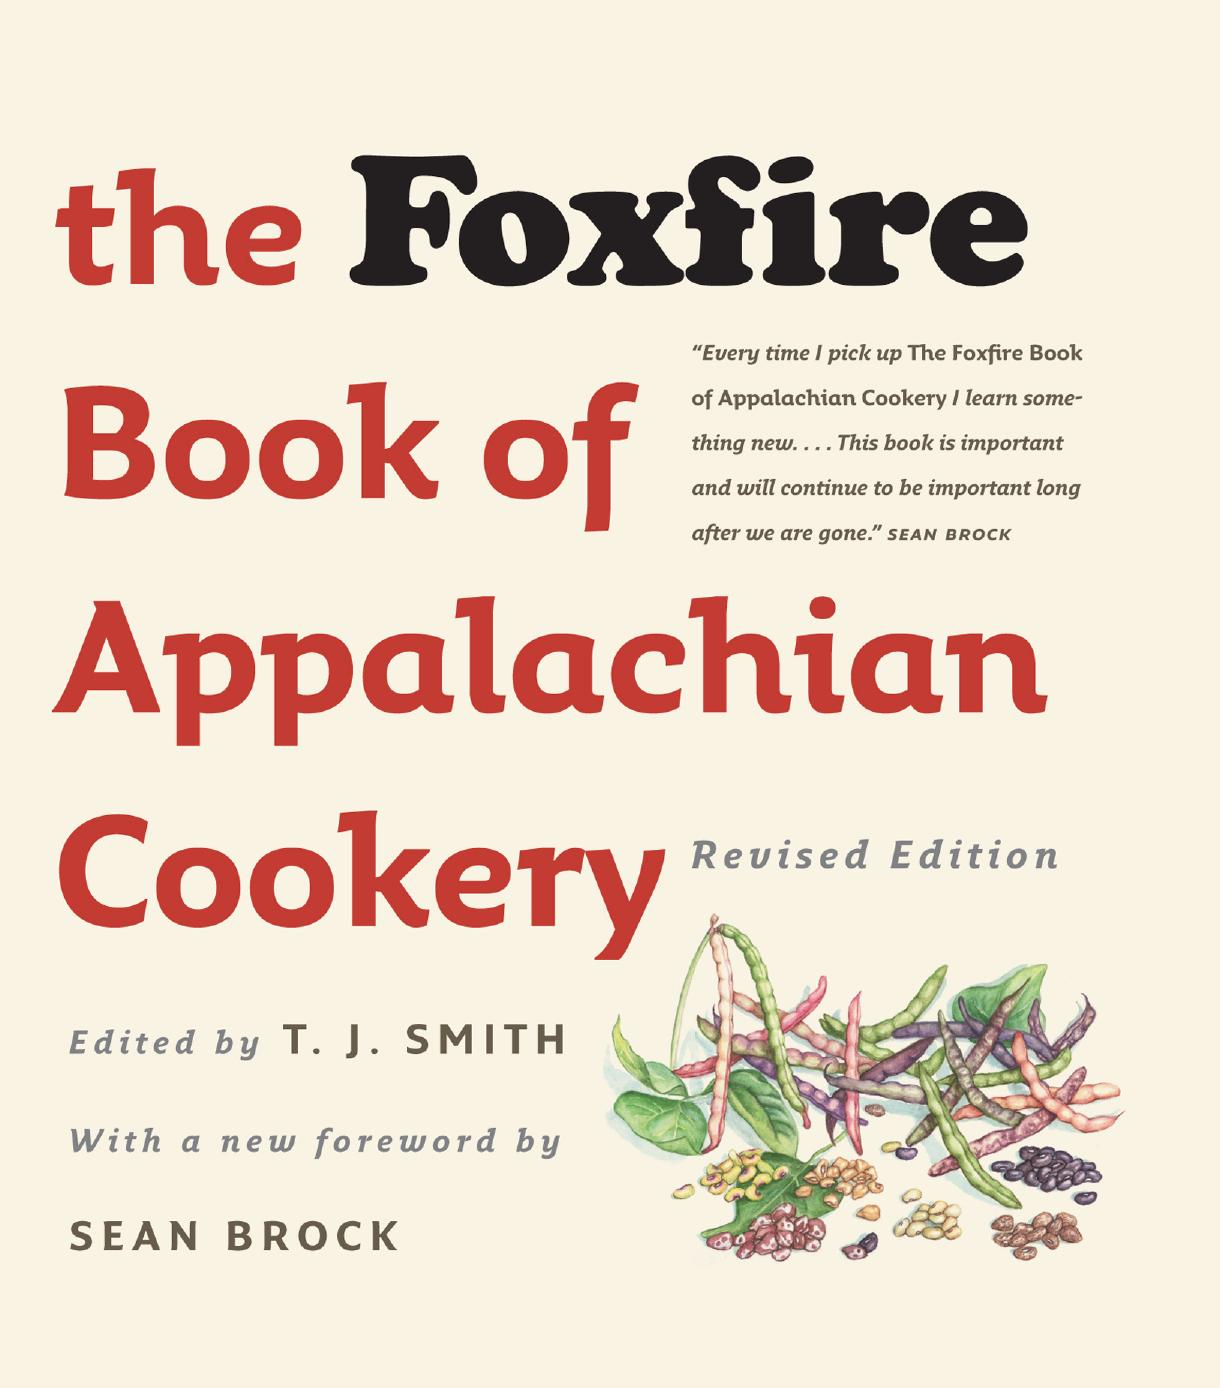 The Foxfire Book of Appalachian Cookery, 2nd Edition